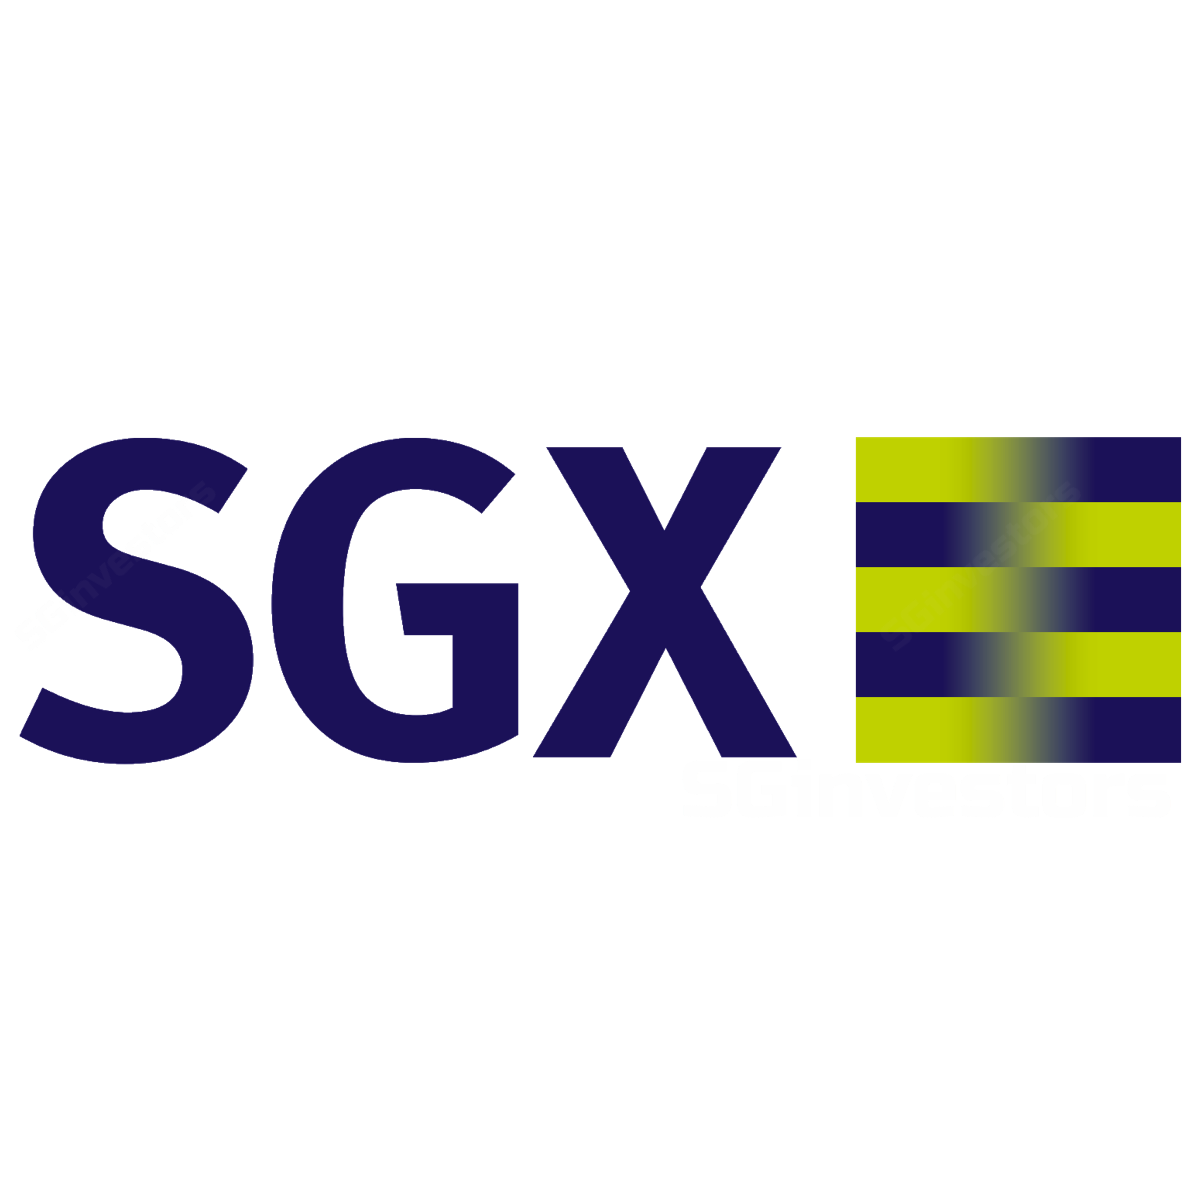 SGX - RHB Invest 2017-09-18: Flattish Jul & Aug SADV But Outlook Remains Positive